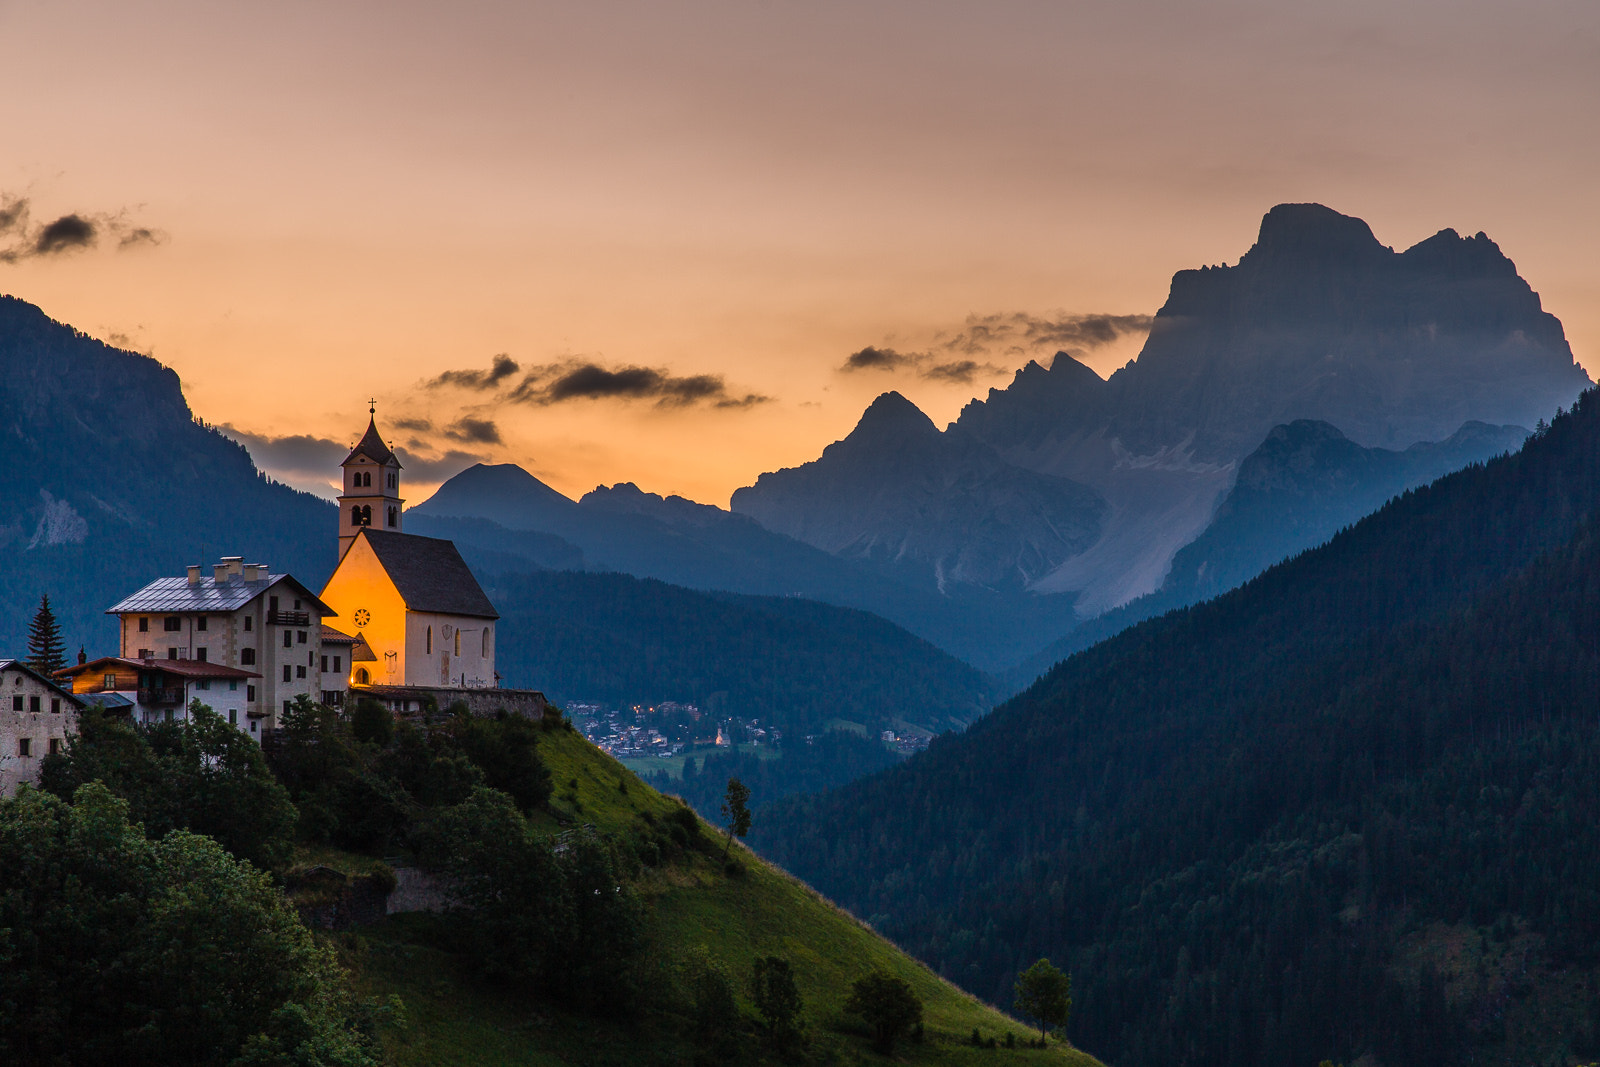 Photograph Morning mood in the mountains by Hans Kruse on 500px